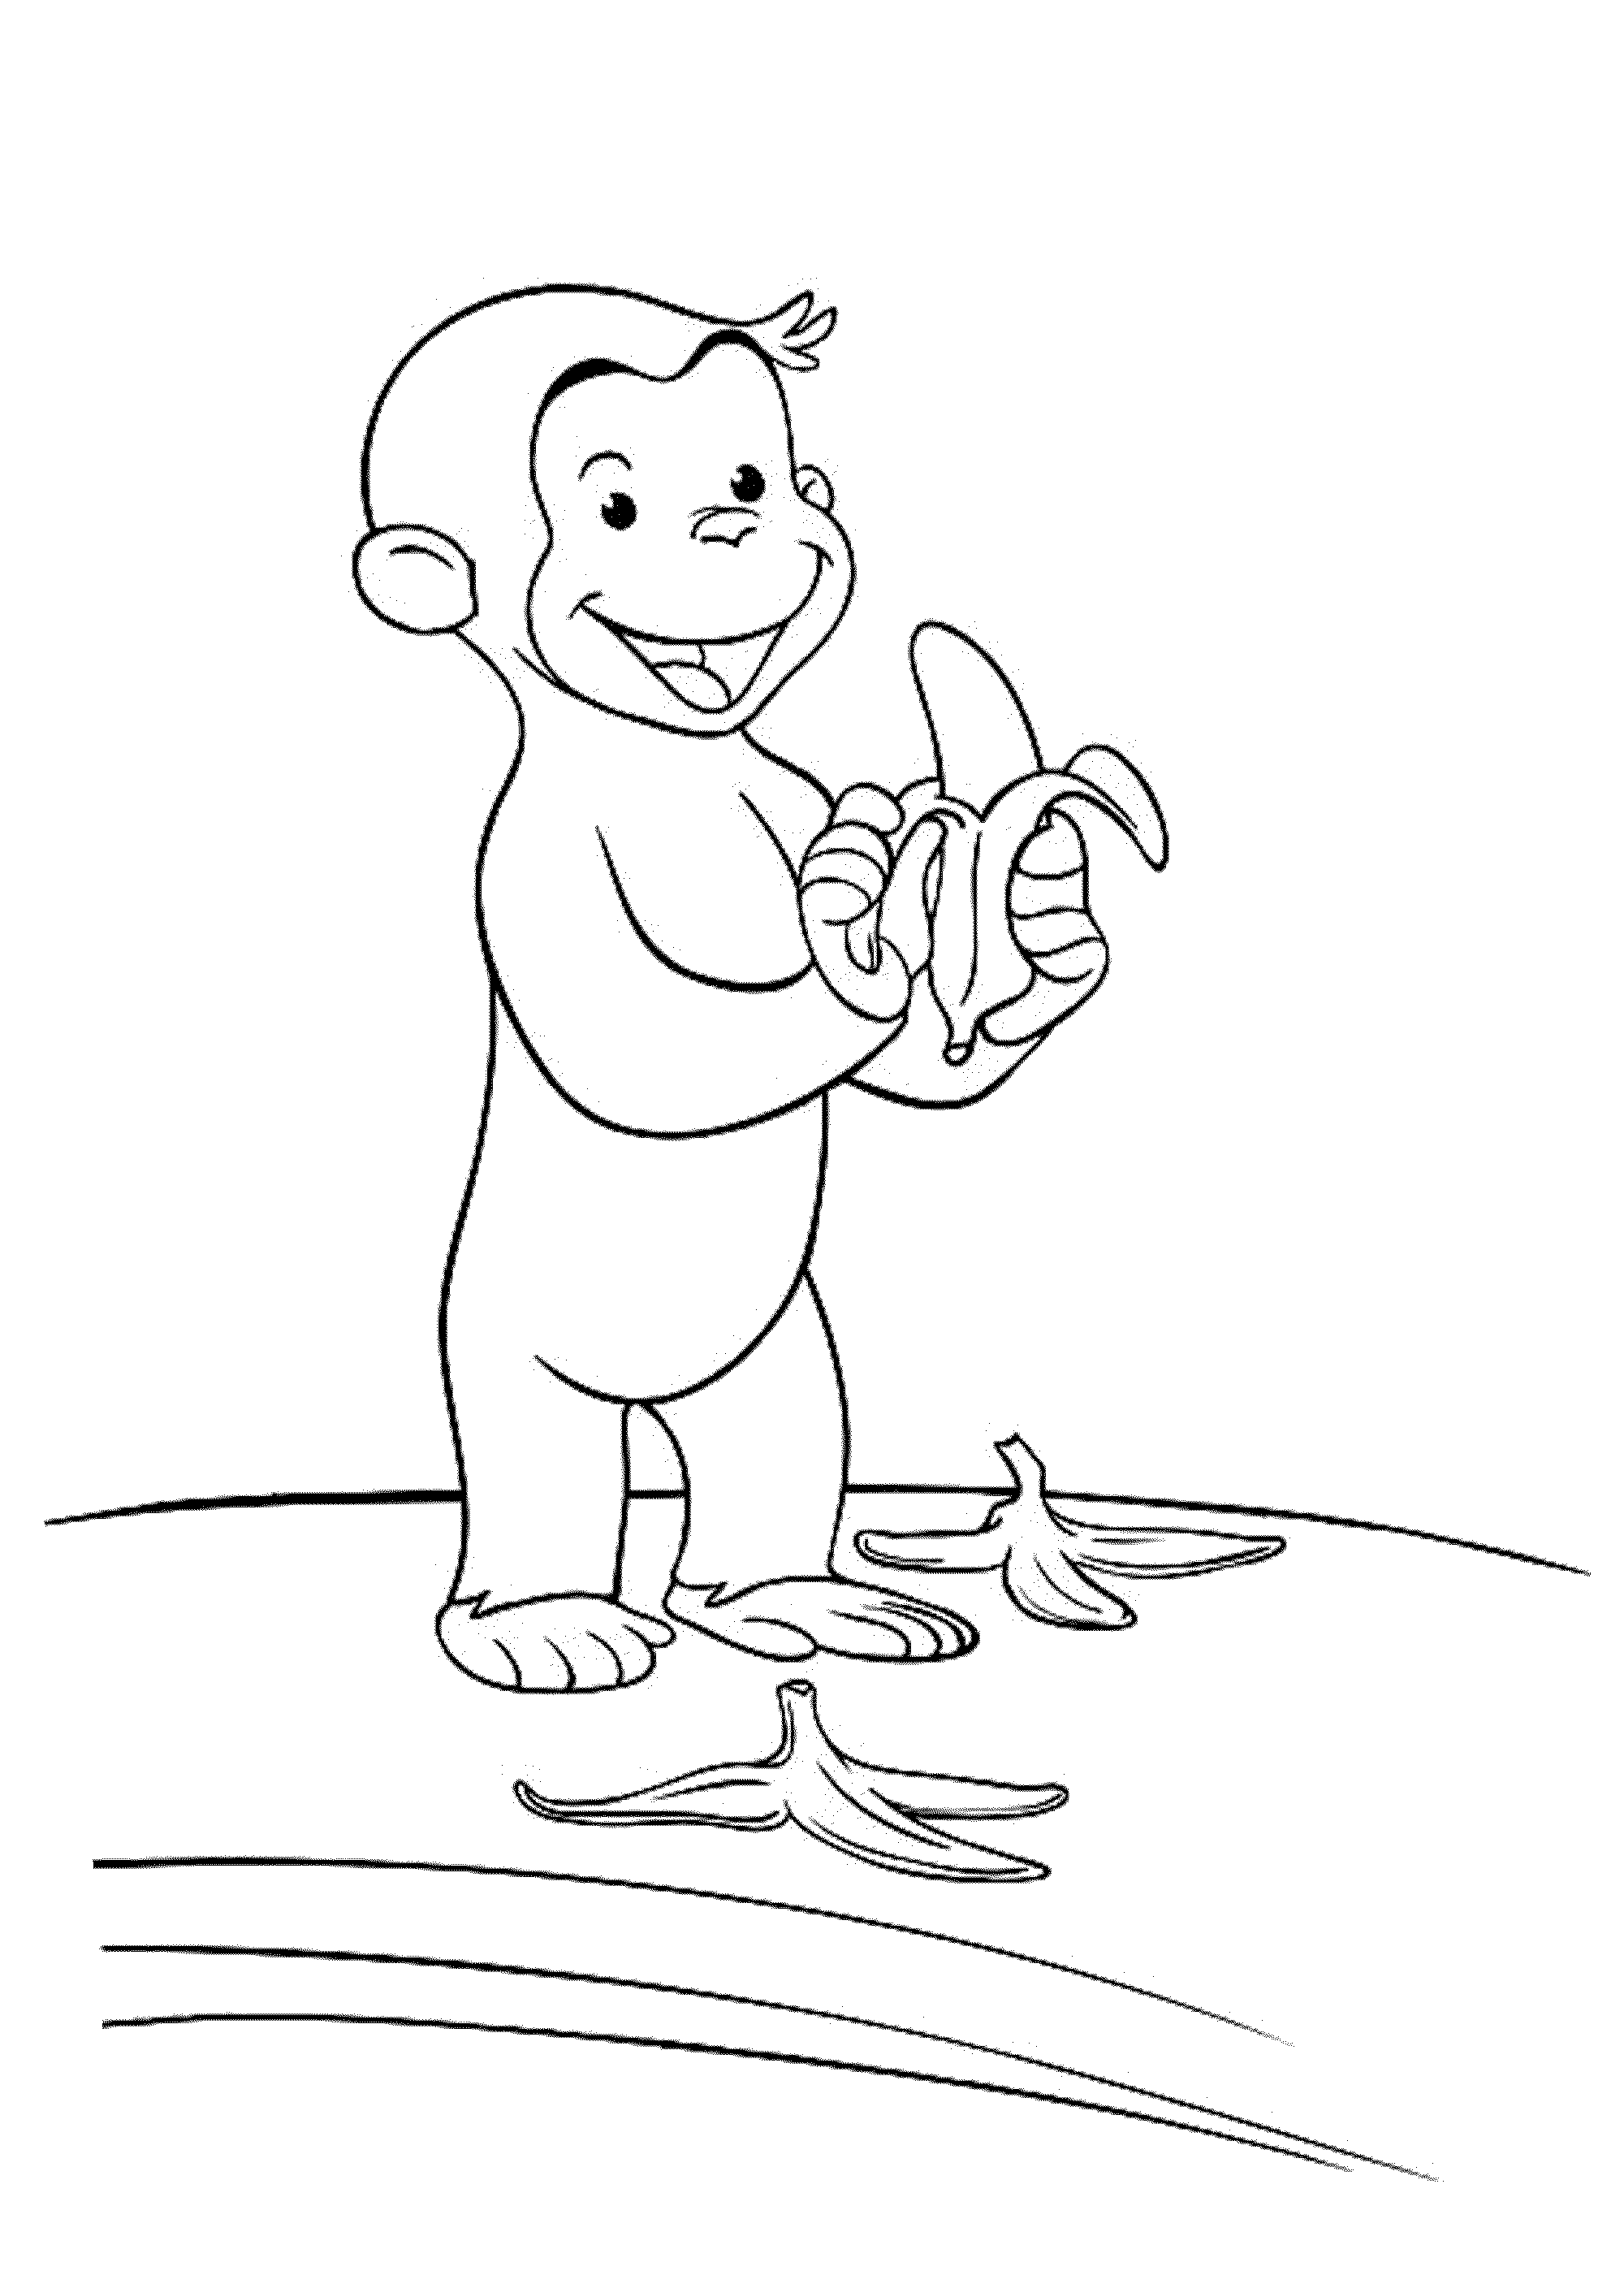 curious george coloring pages print download curious george coloring pages to curious george coloring pages